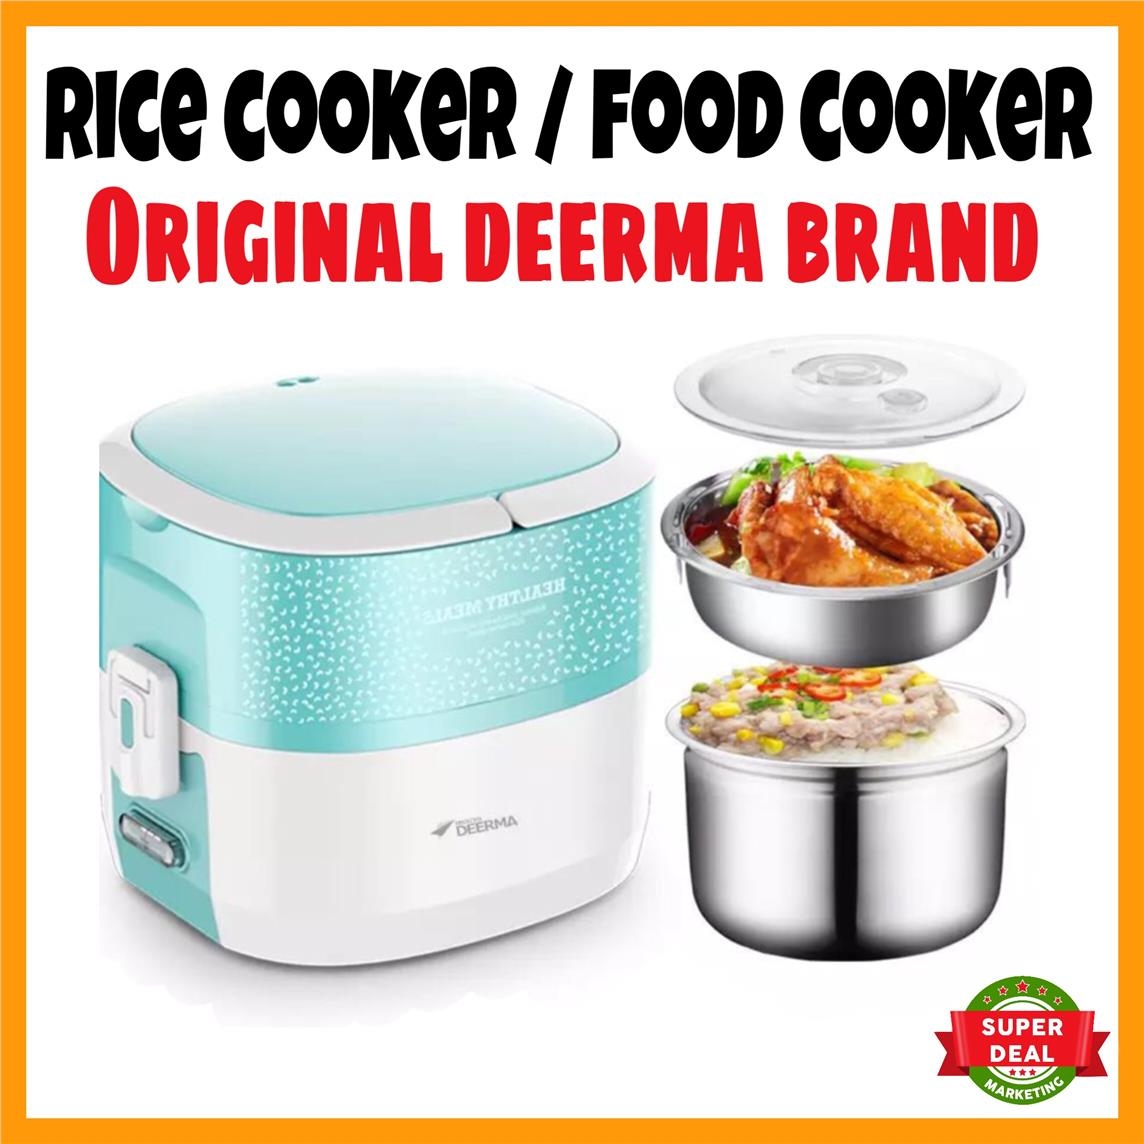 ORIGINAL Deerma Rice Cooker 1.2L Fo (end 9/21/2019 12:15 AM)